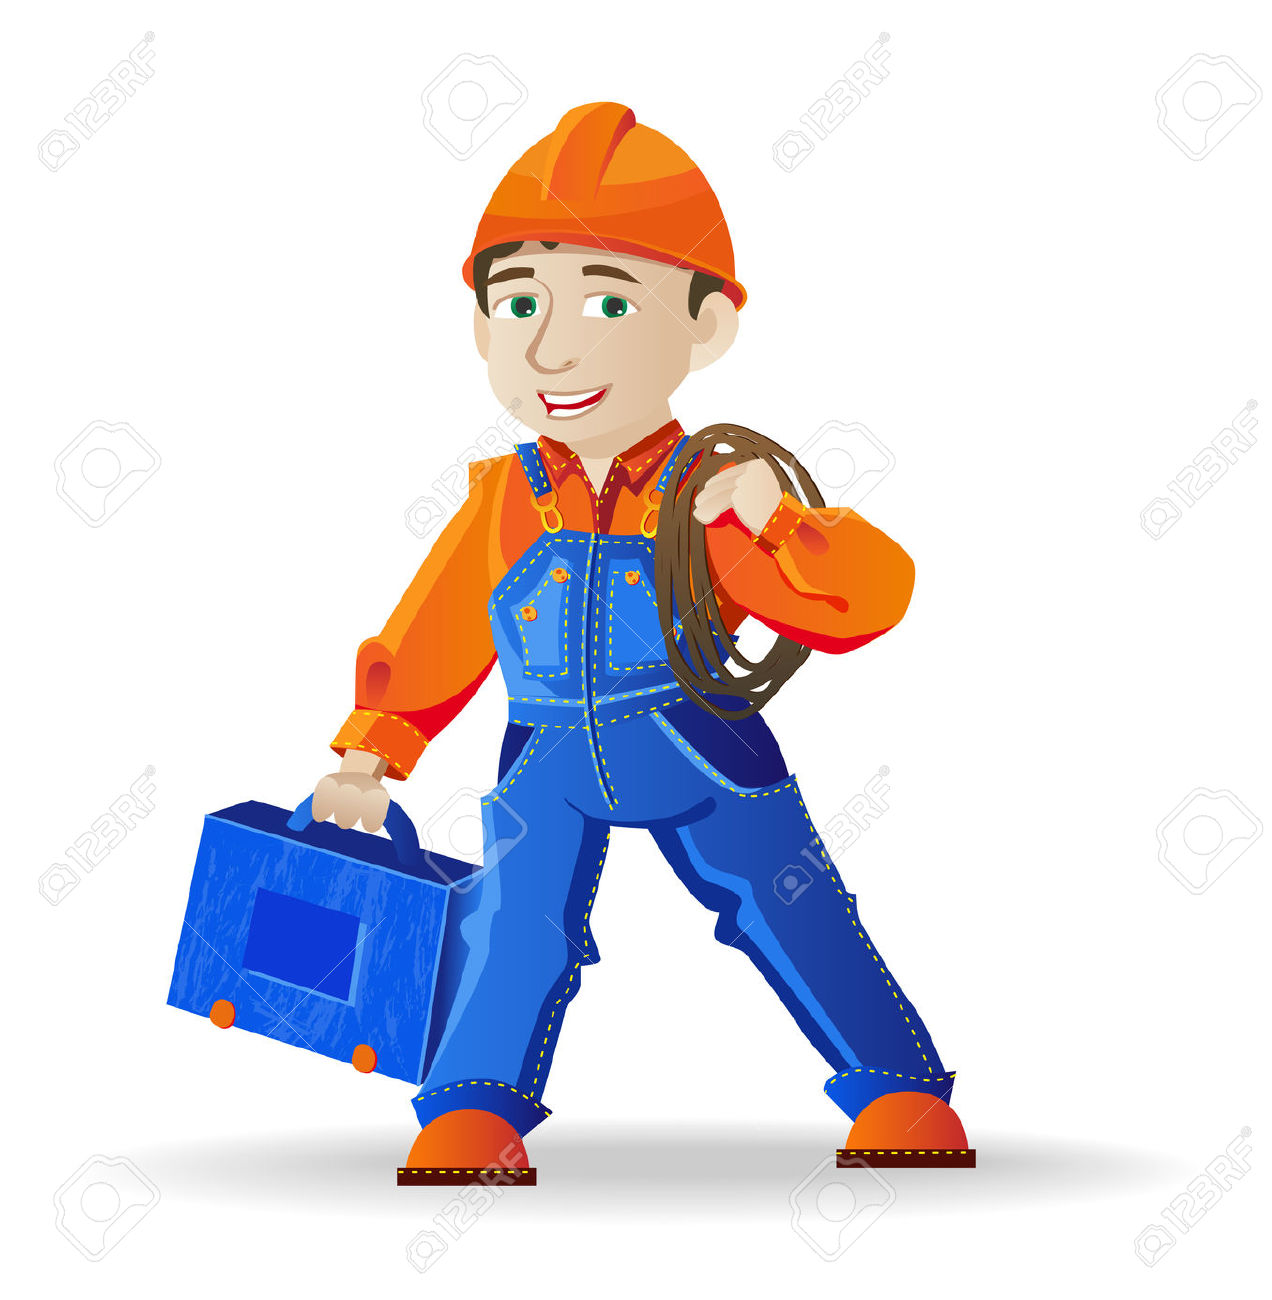 Free electrician clipart images.